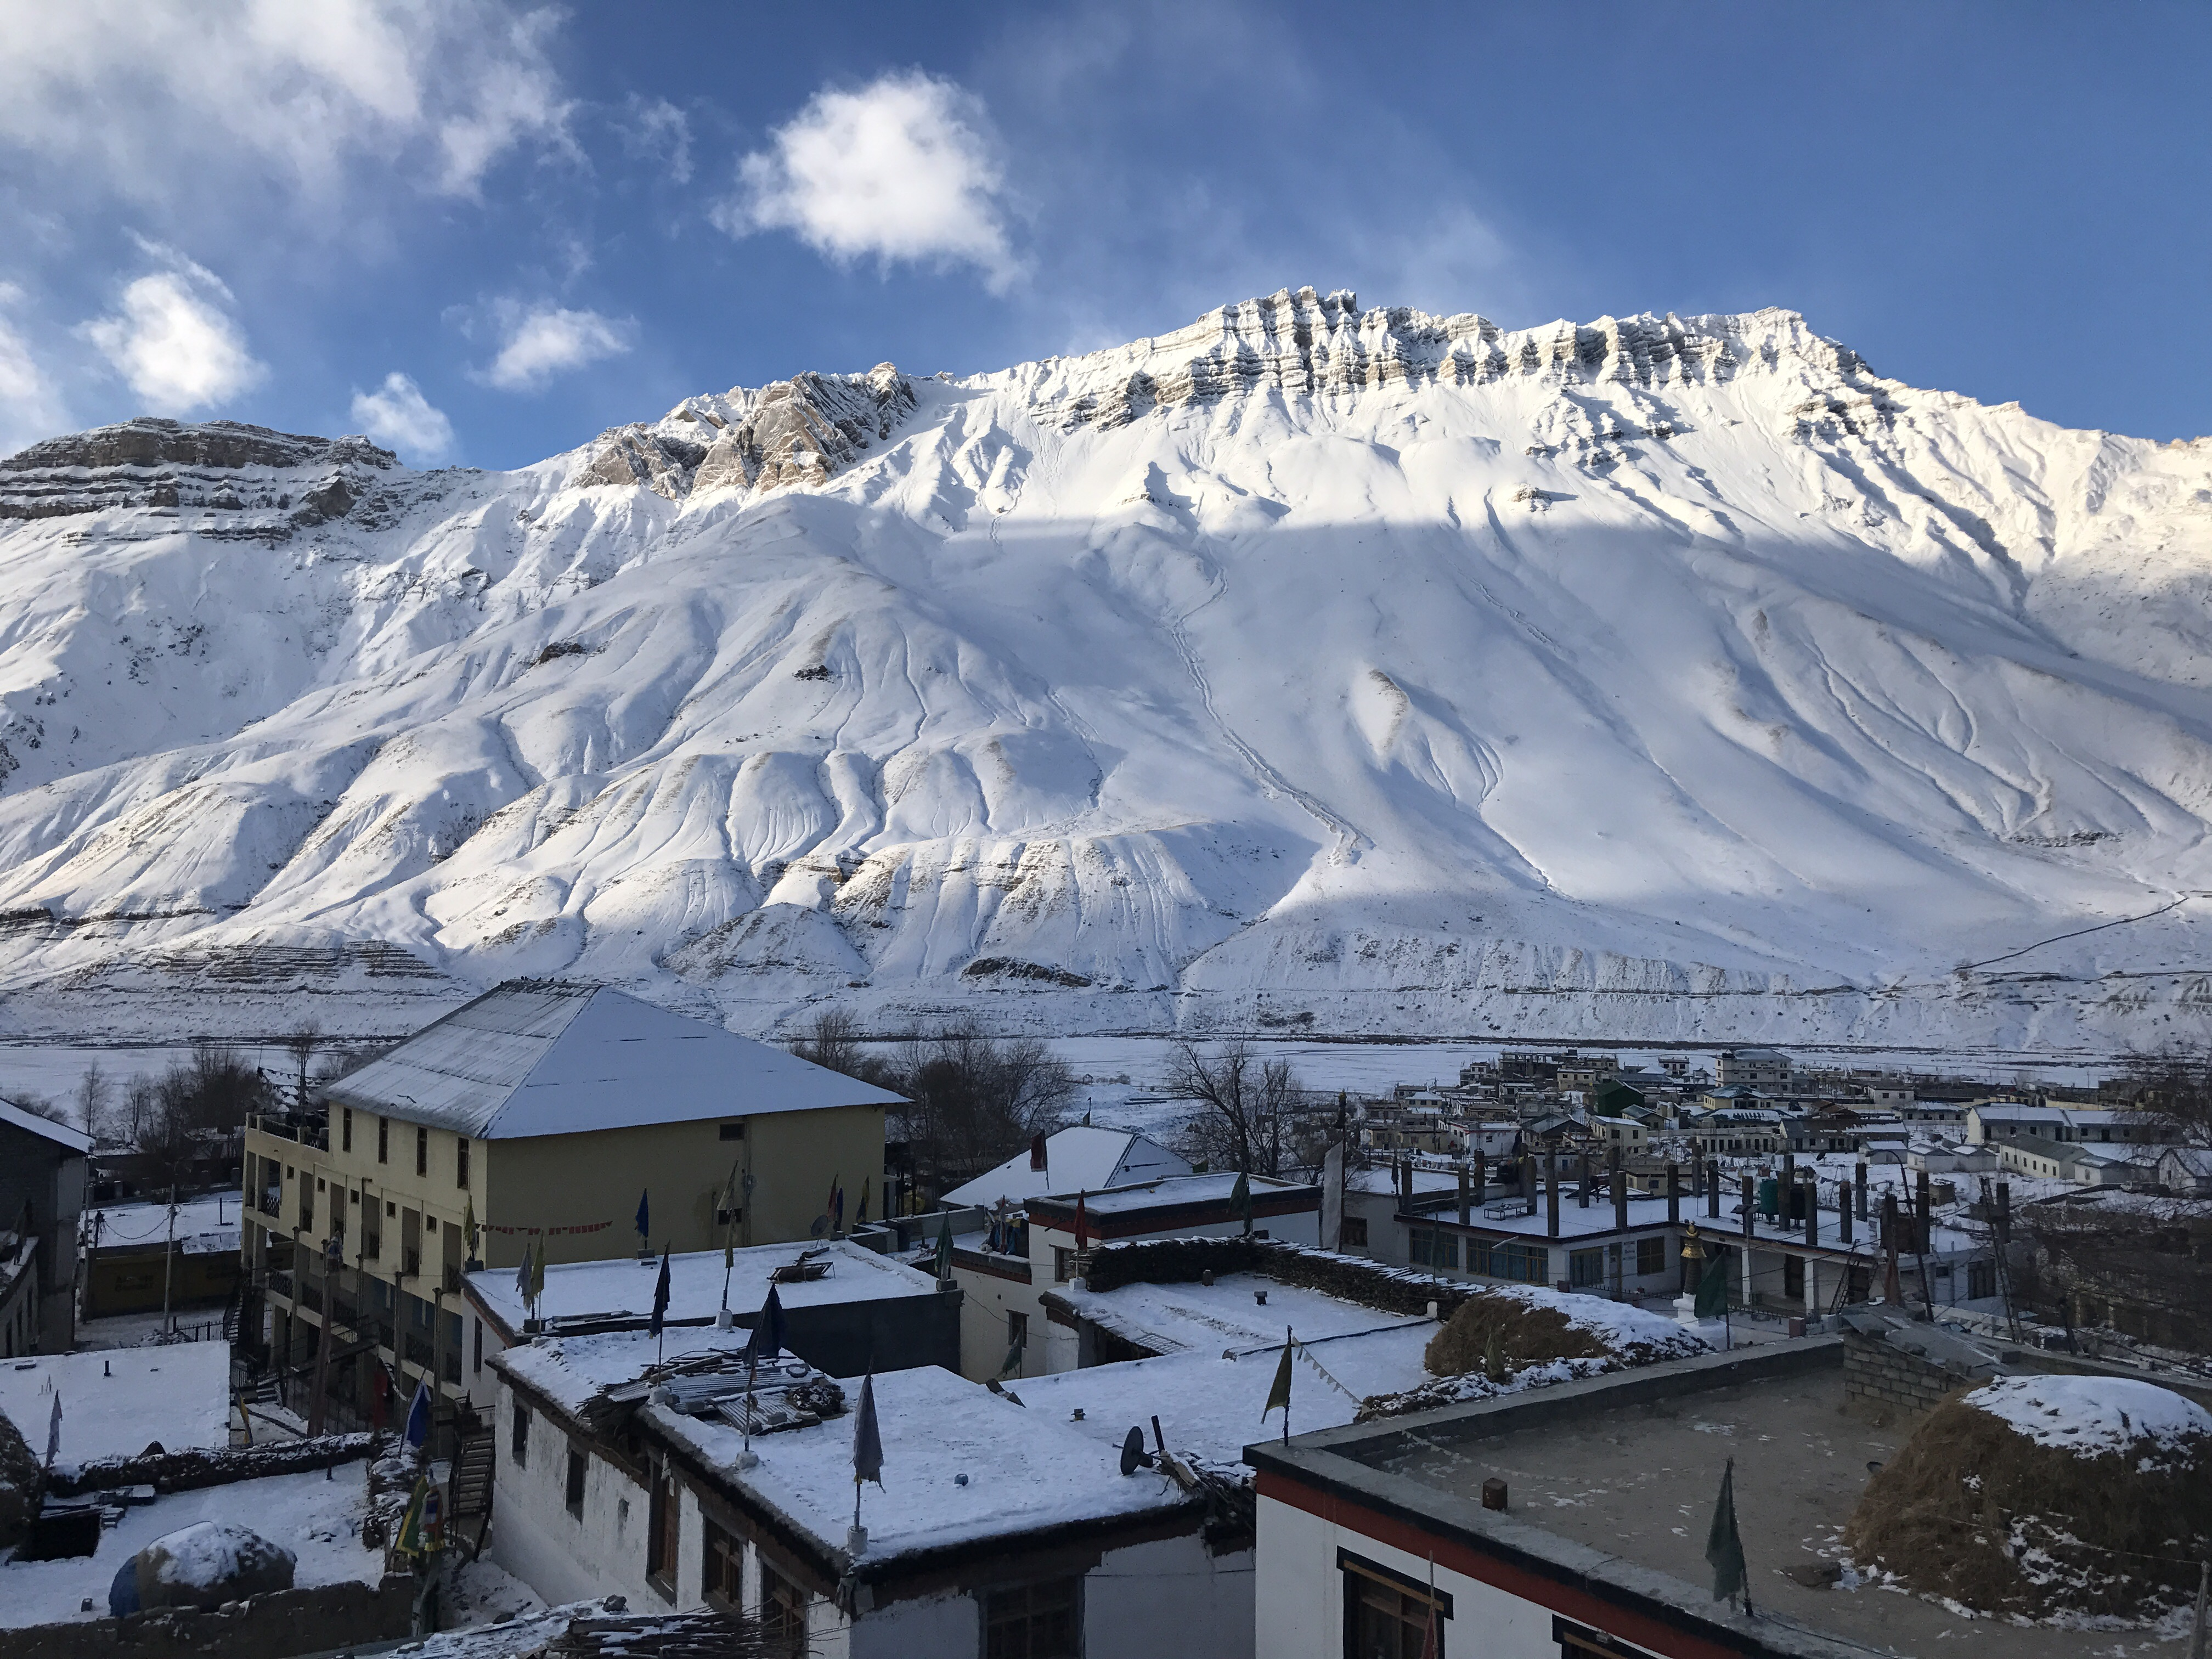 Morning View of town, Kaza Lahaul and Spiti, Himachal Pradesh, India.